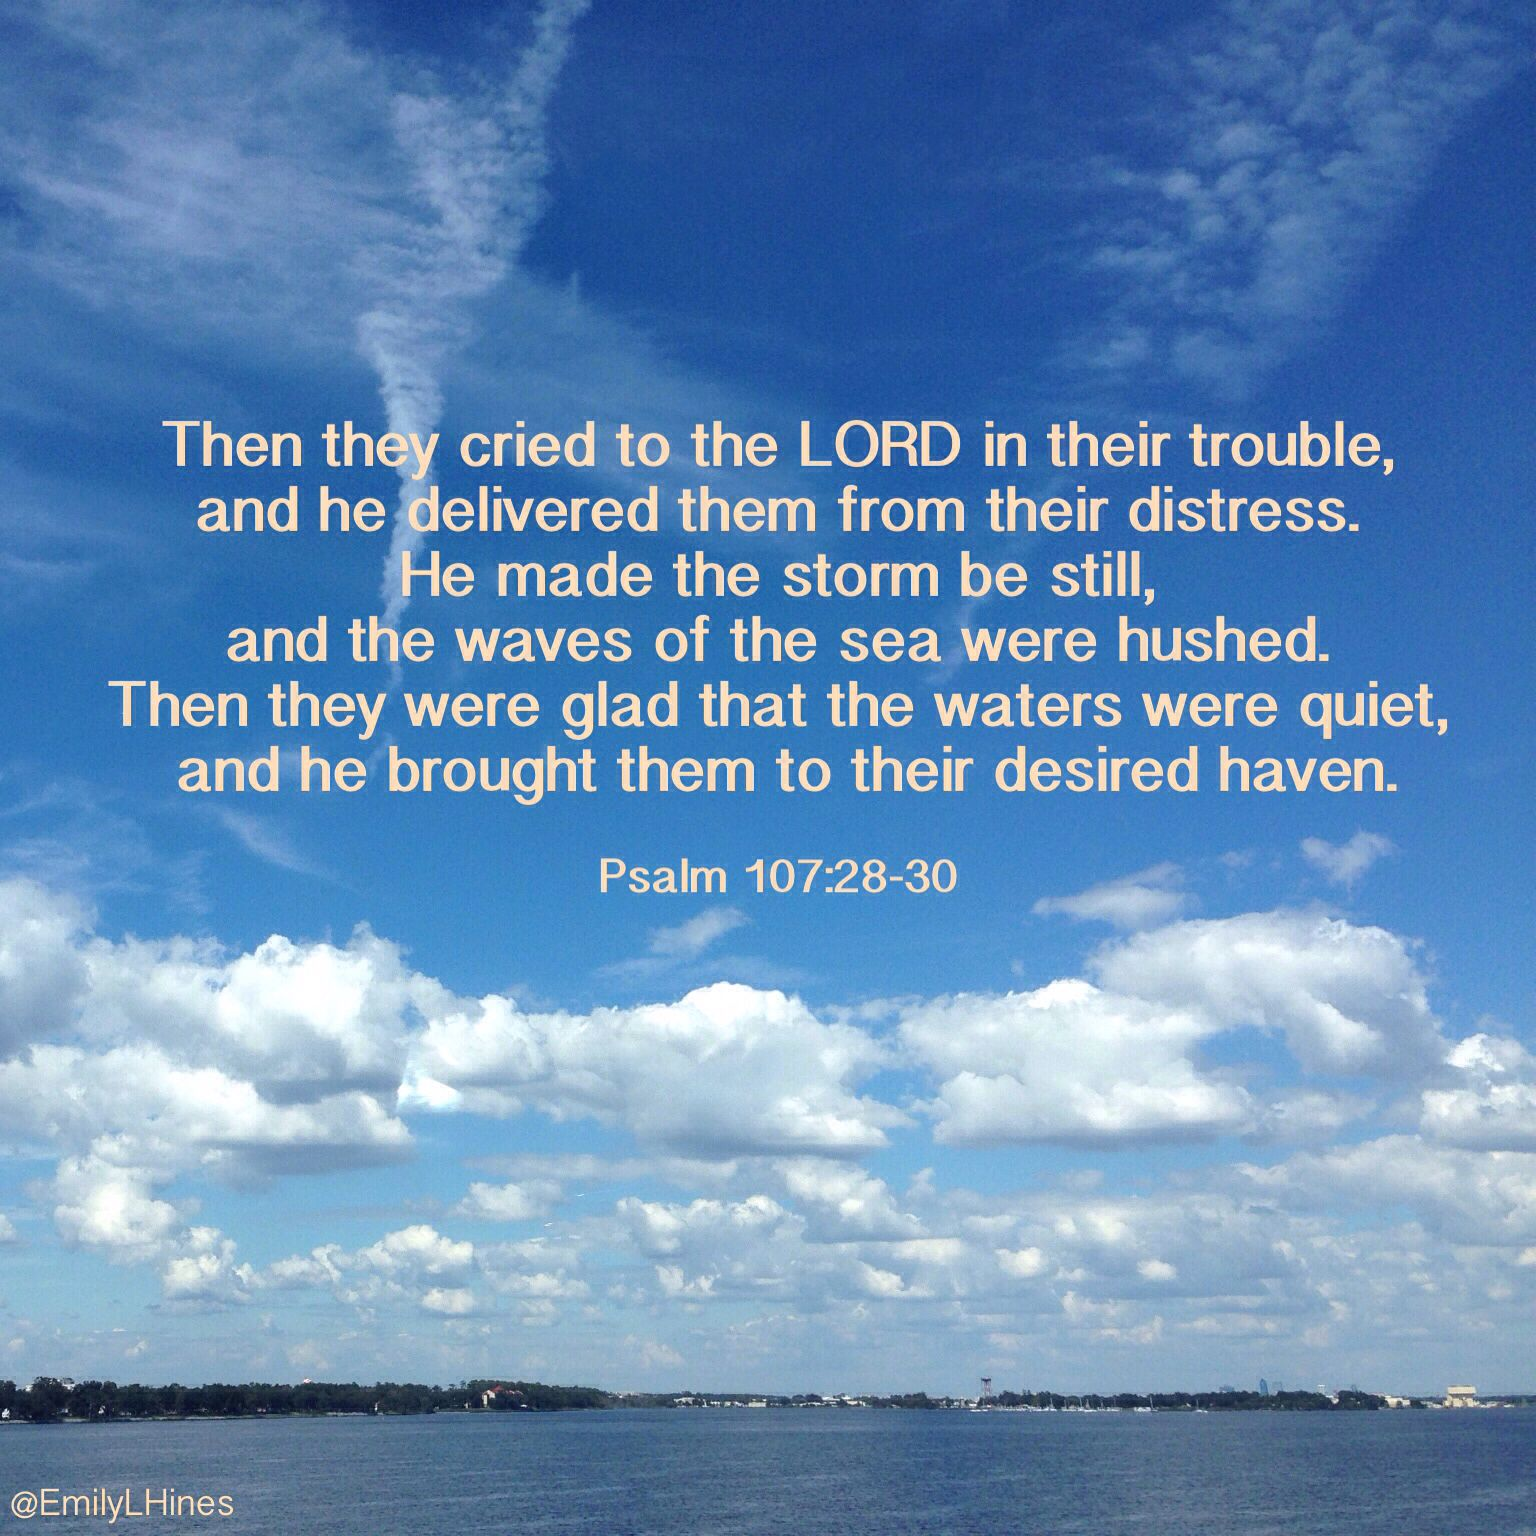 A Bible Verse About The Guidance And Power Of God During Times Of Distress.  A Reminder That The Lord Is Always With Us.